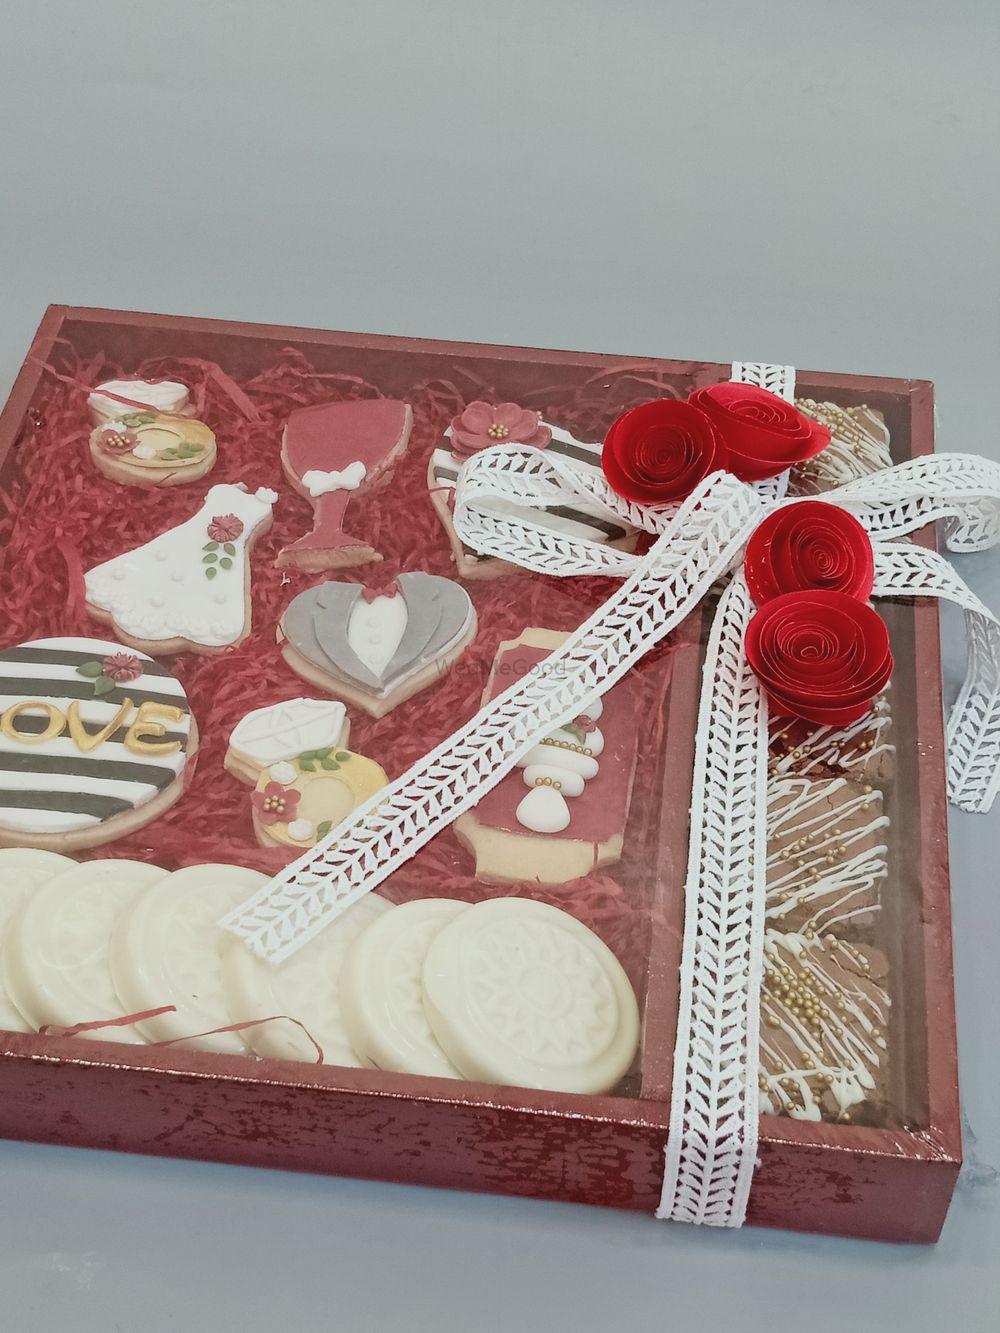 Photo From Gifts and Boxes - By Caked India